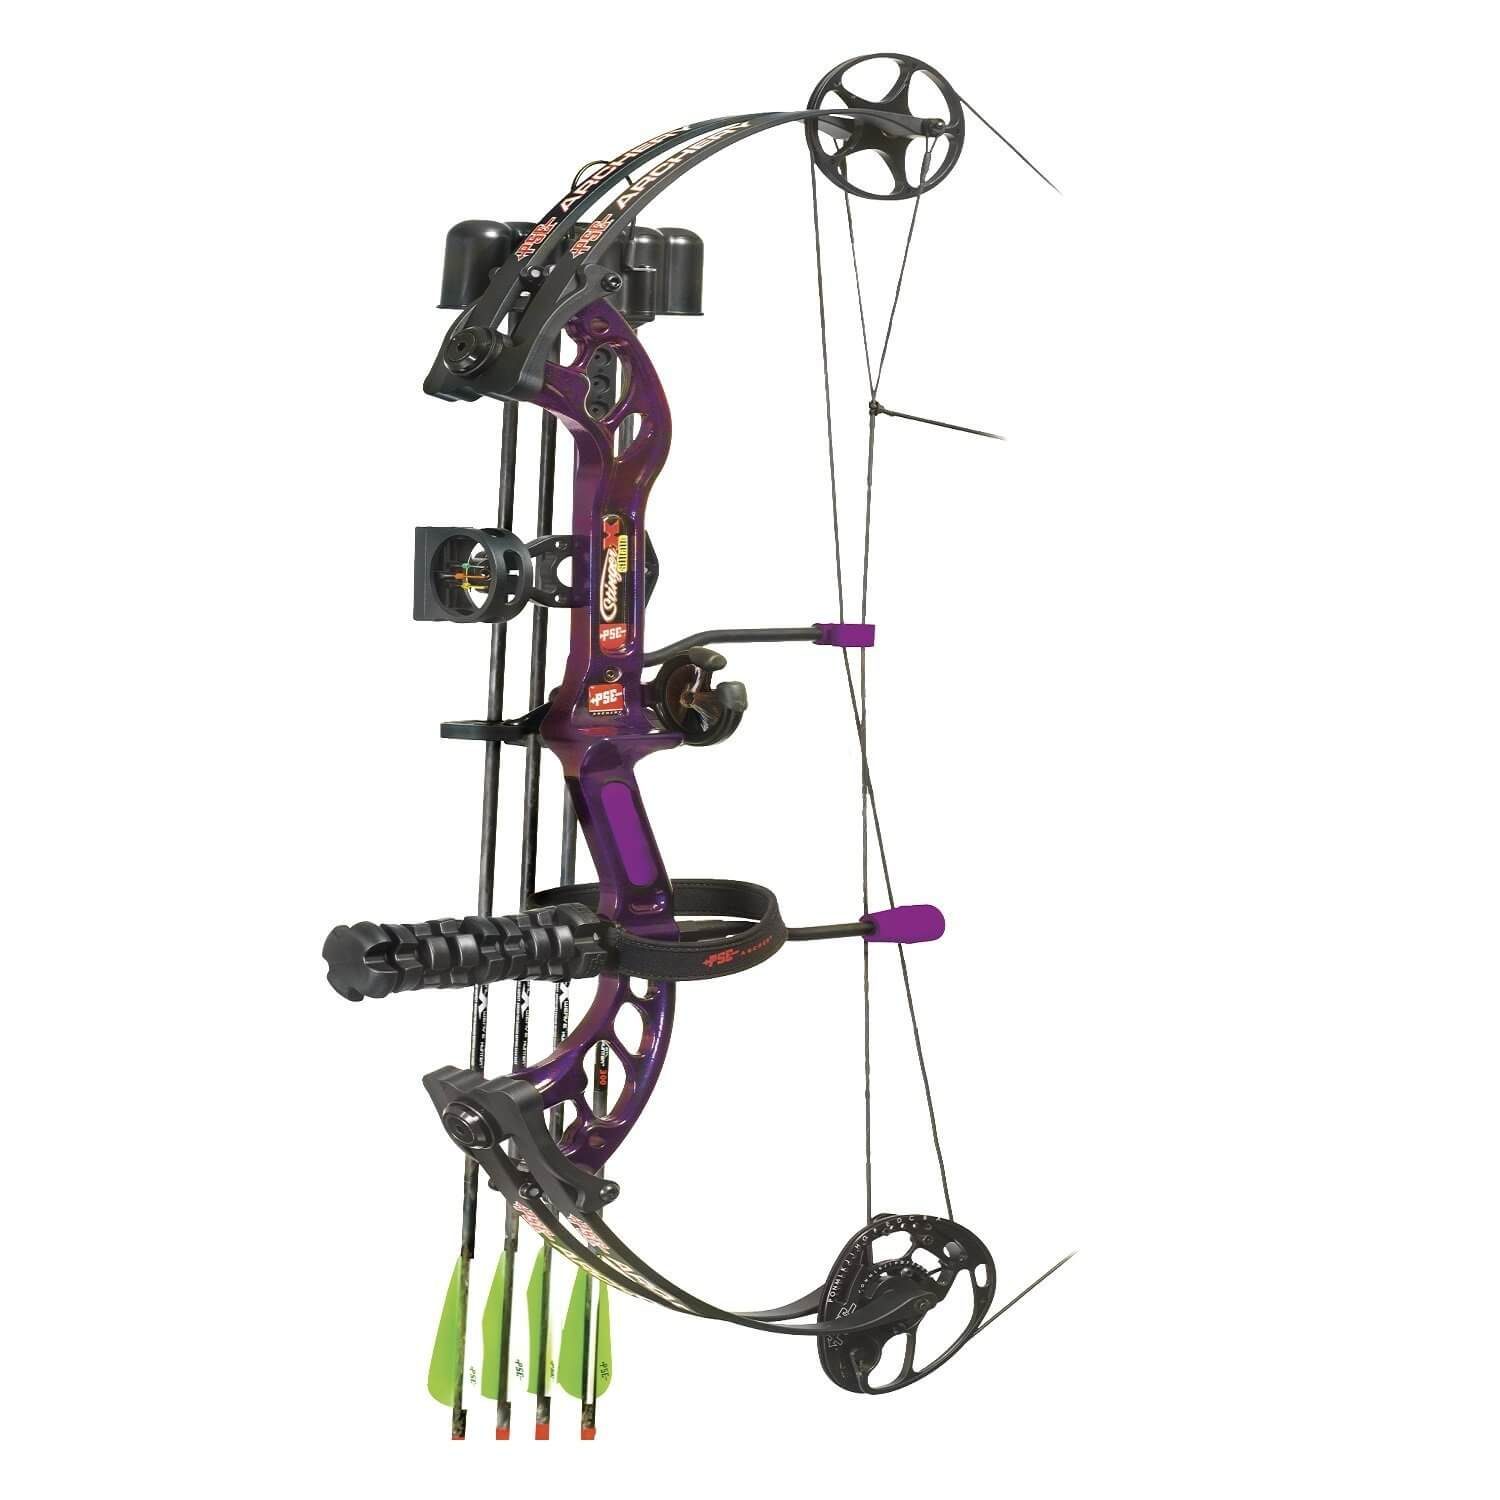 PSE Ready To Shoot Beginners Crossbow For Hunting